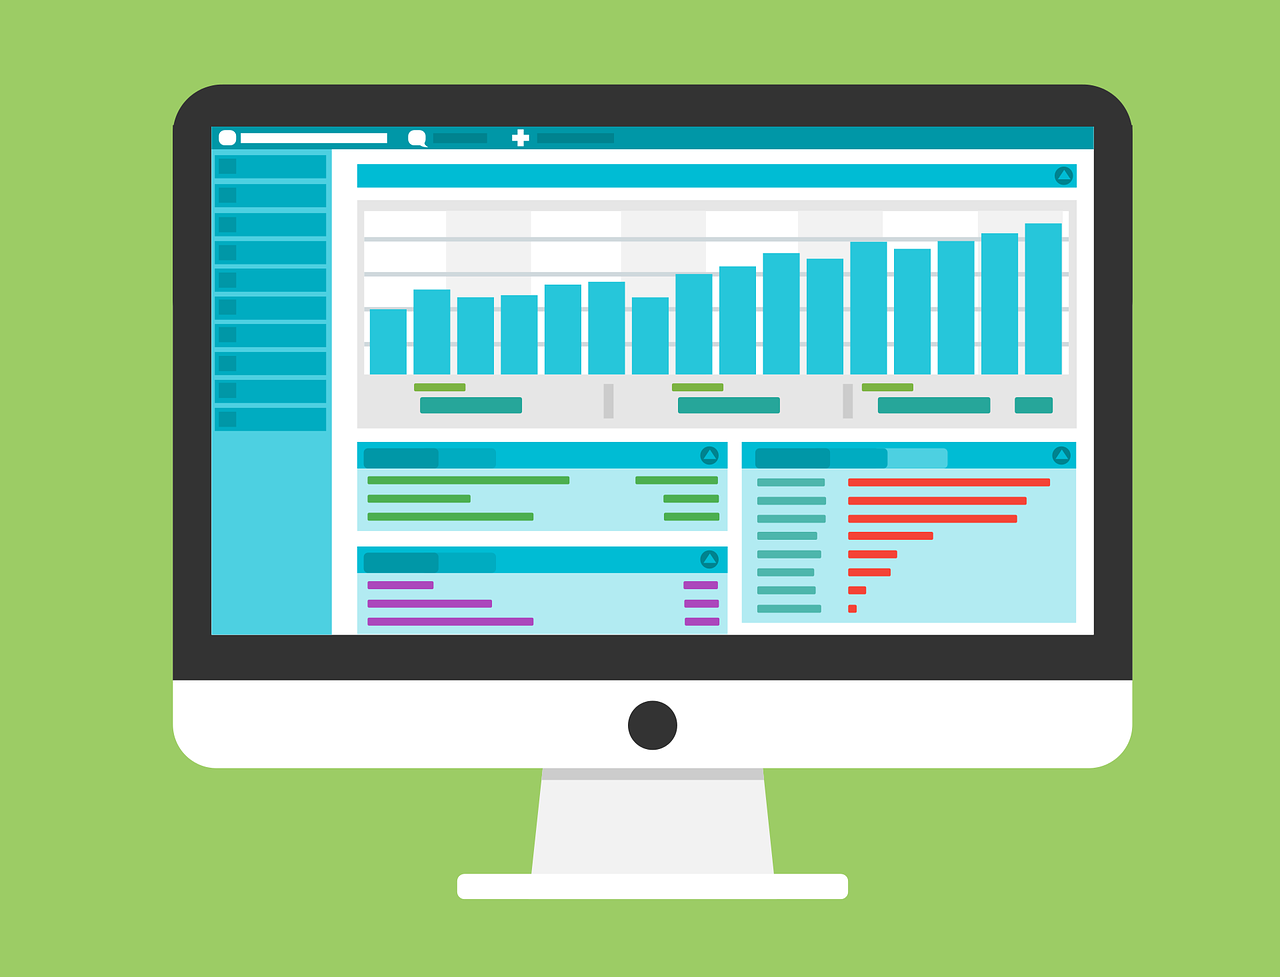 How to Optimize your IT Business with Business Intelligence